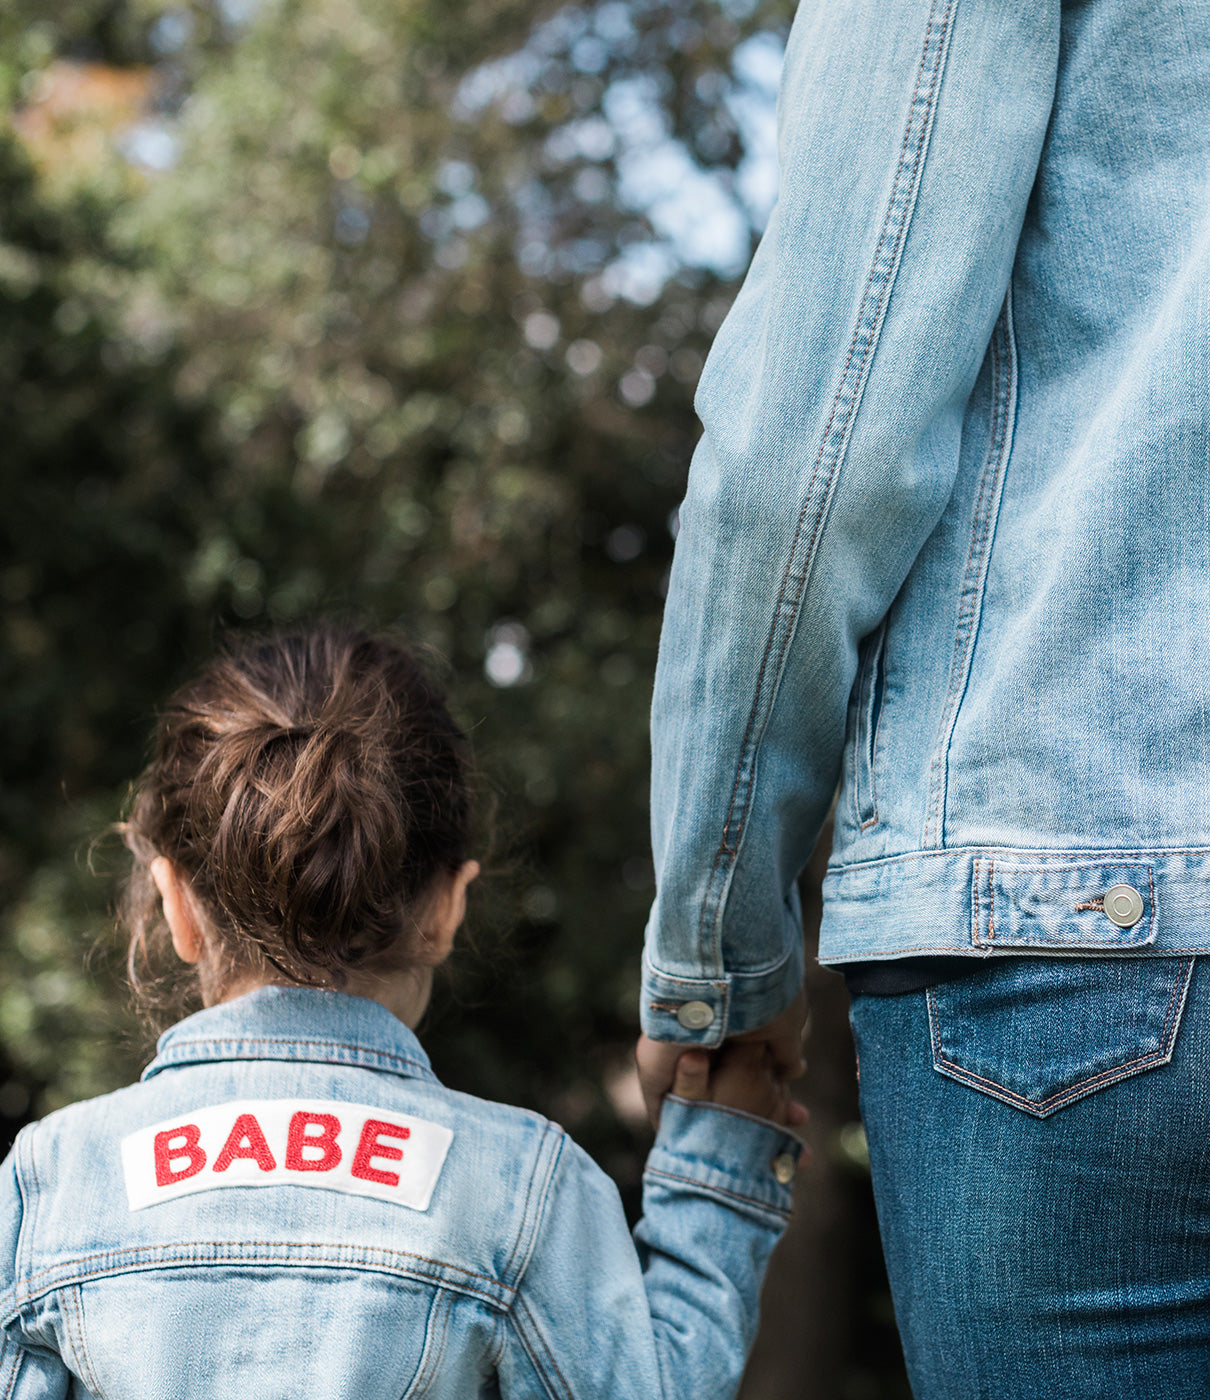 Make It a PairCheck out the BABE jacket for an adorable mommy-and-me look.